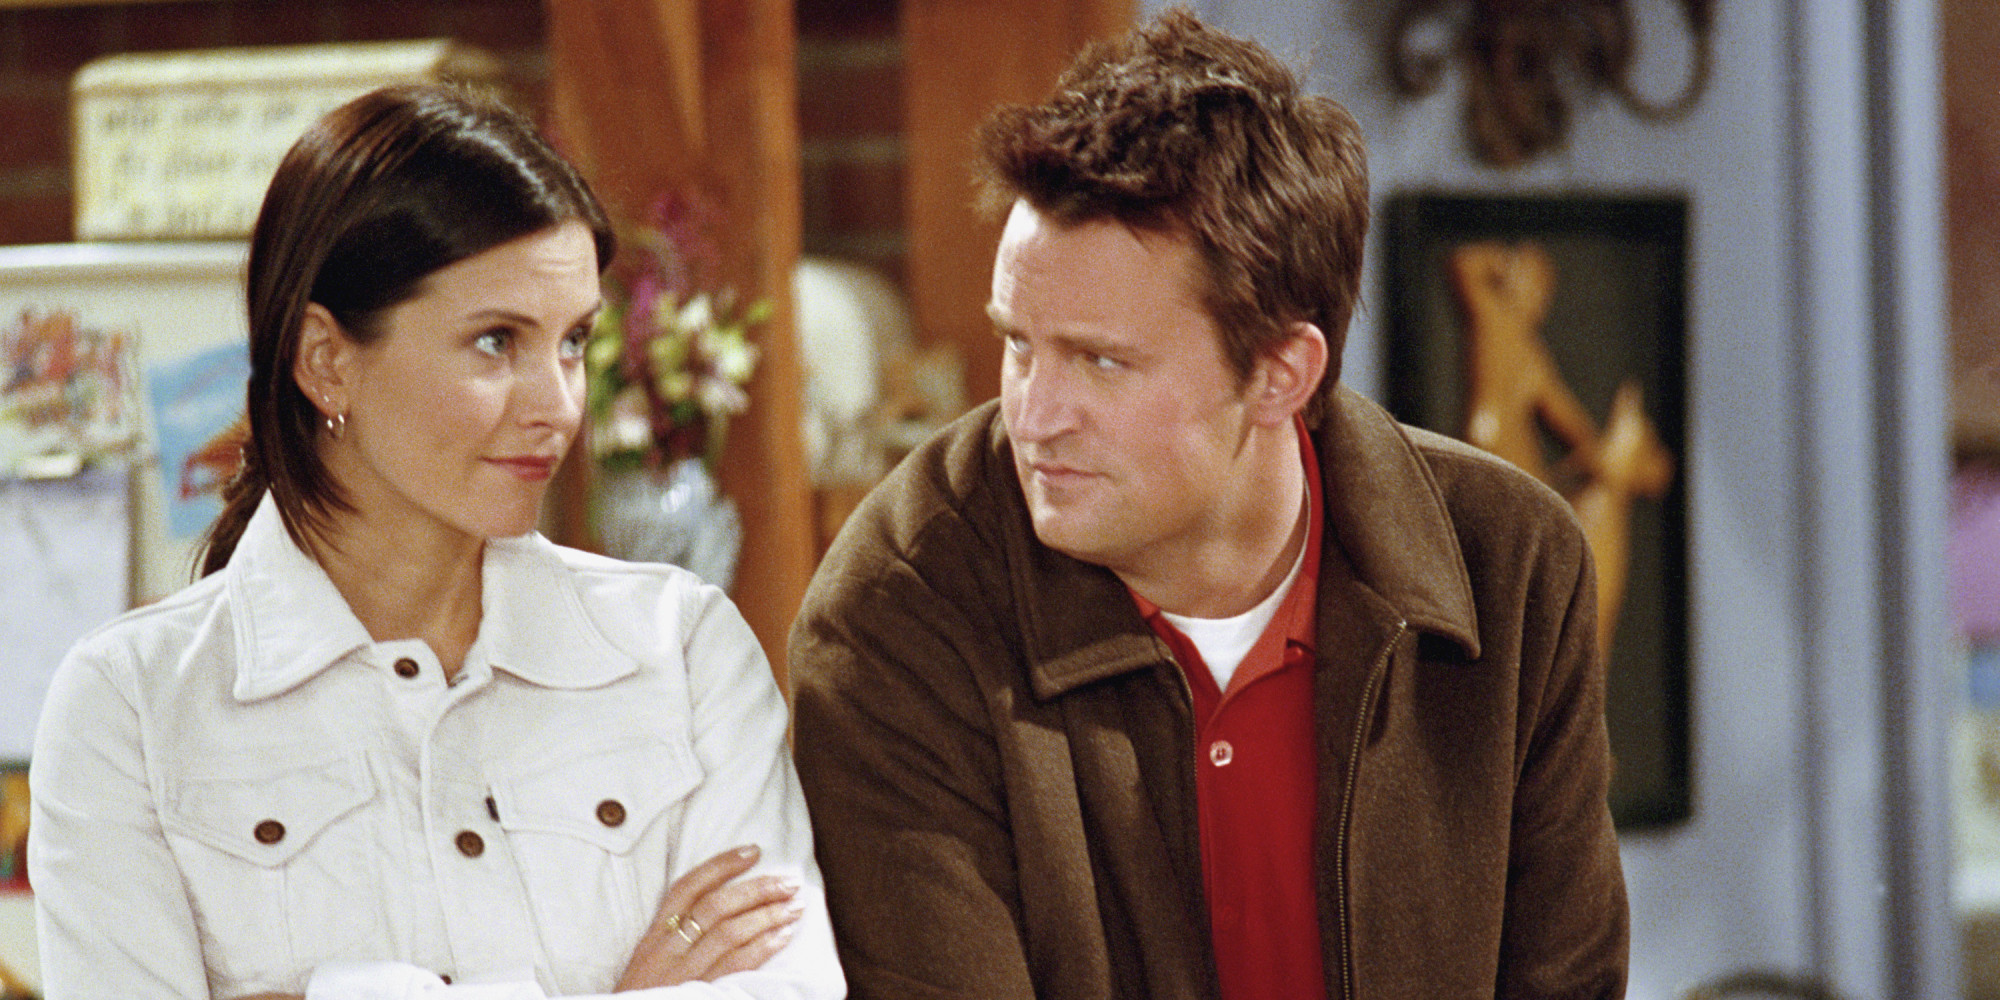 In Friends when do Chandler and Monica start dating